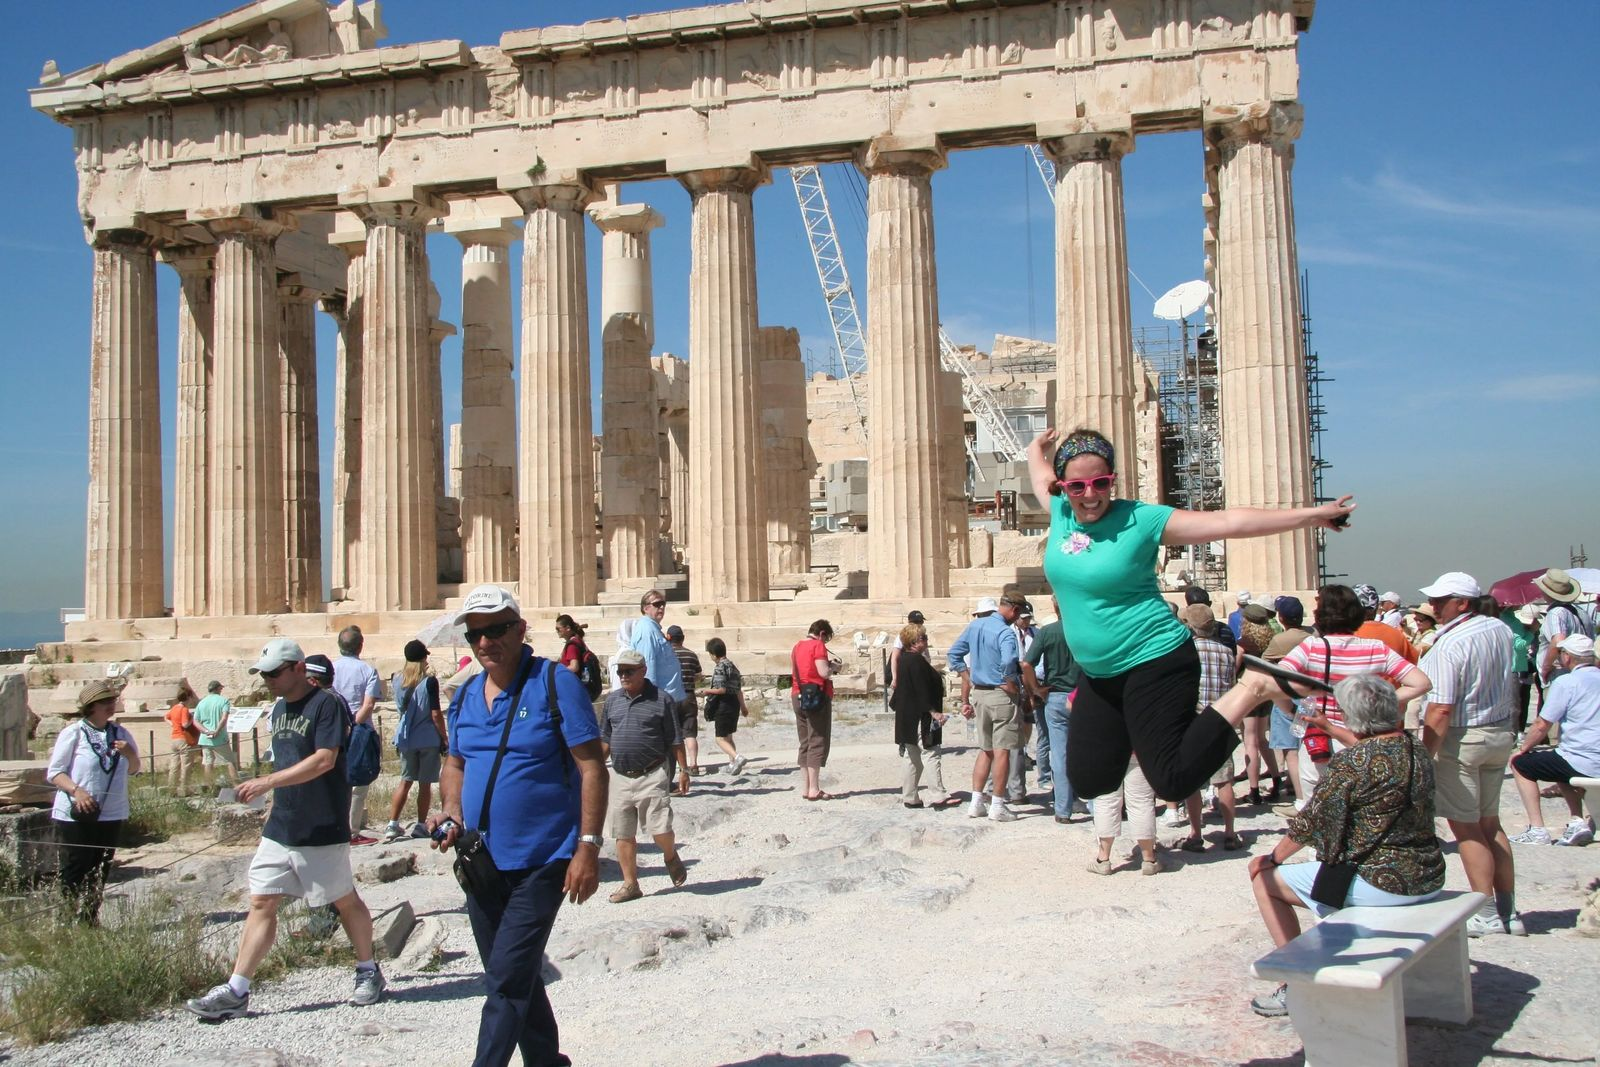 Visiting the Acropolis in Greece - Culture Trekking - #visitingtheacropolis #Greece #HistoryoftheAcropolis